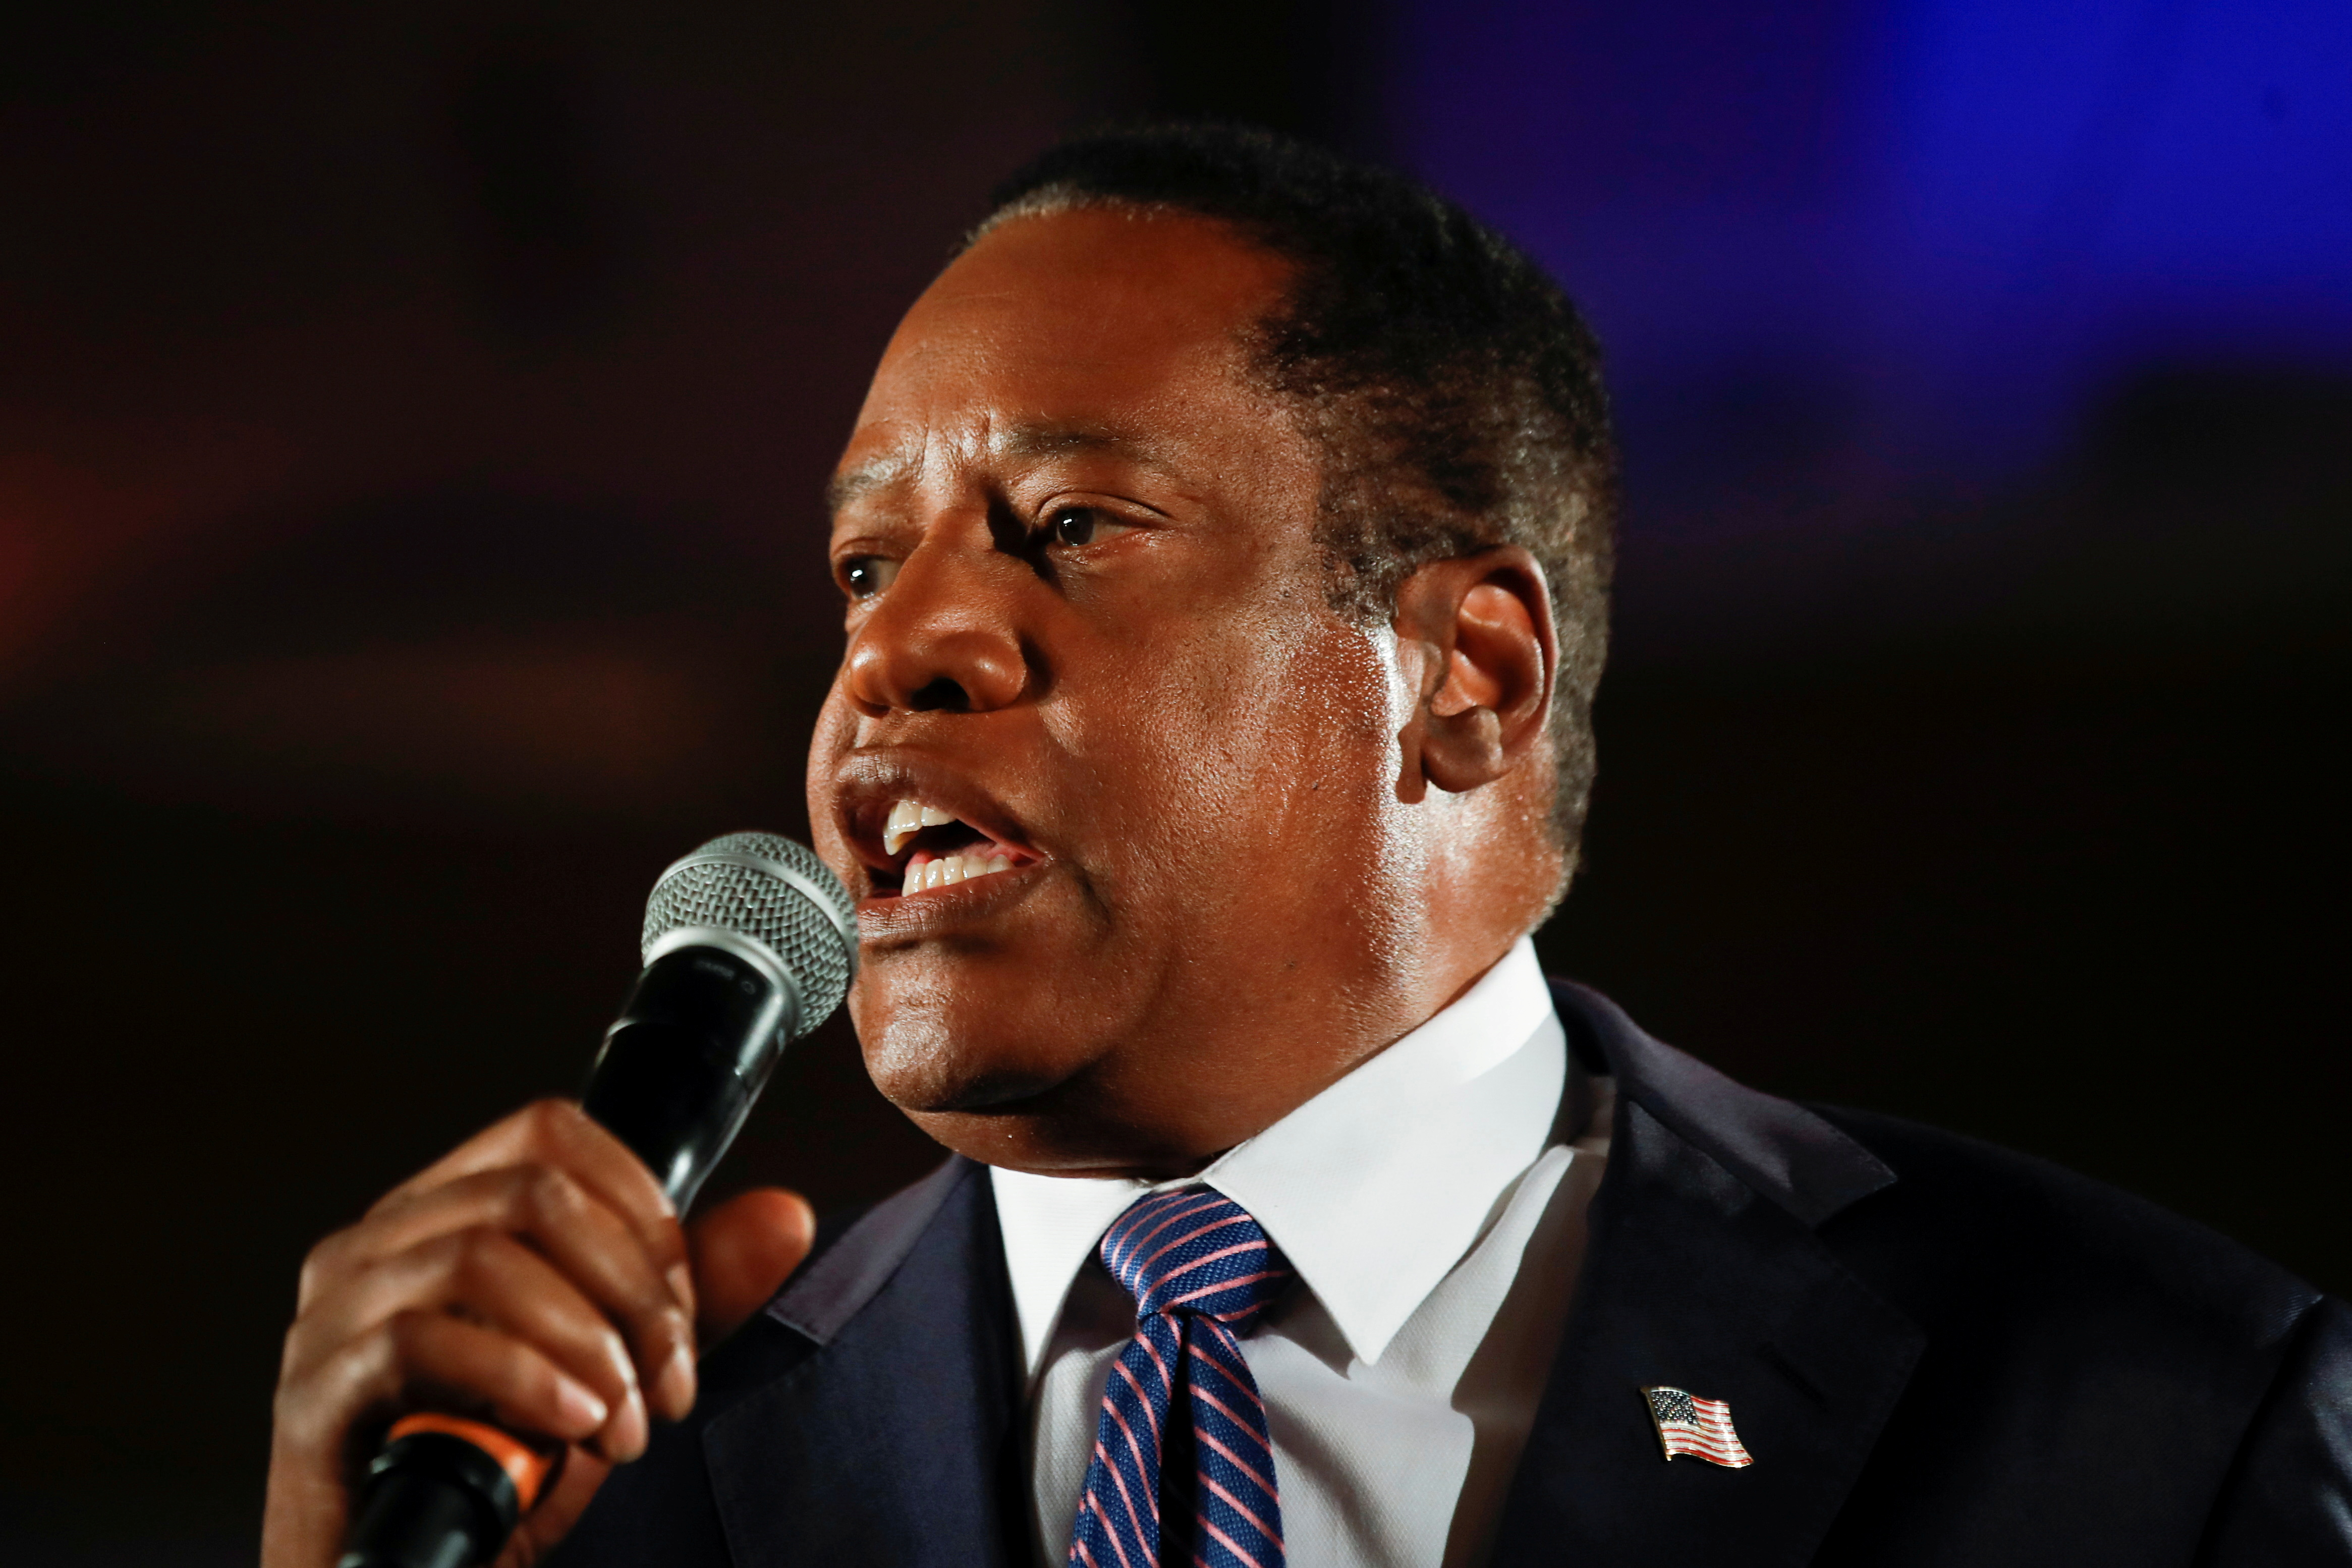 Republican gubernatorial candidate Larry Elder speaks after the polls close on the recall election in Costa Mesa, California, U.S., September 14, 2021. REUTERS/Mike Blake